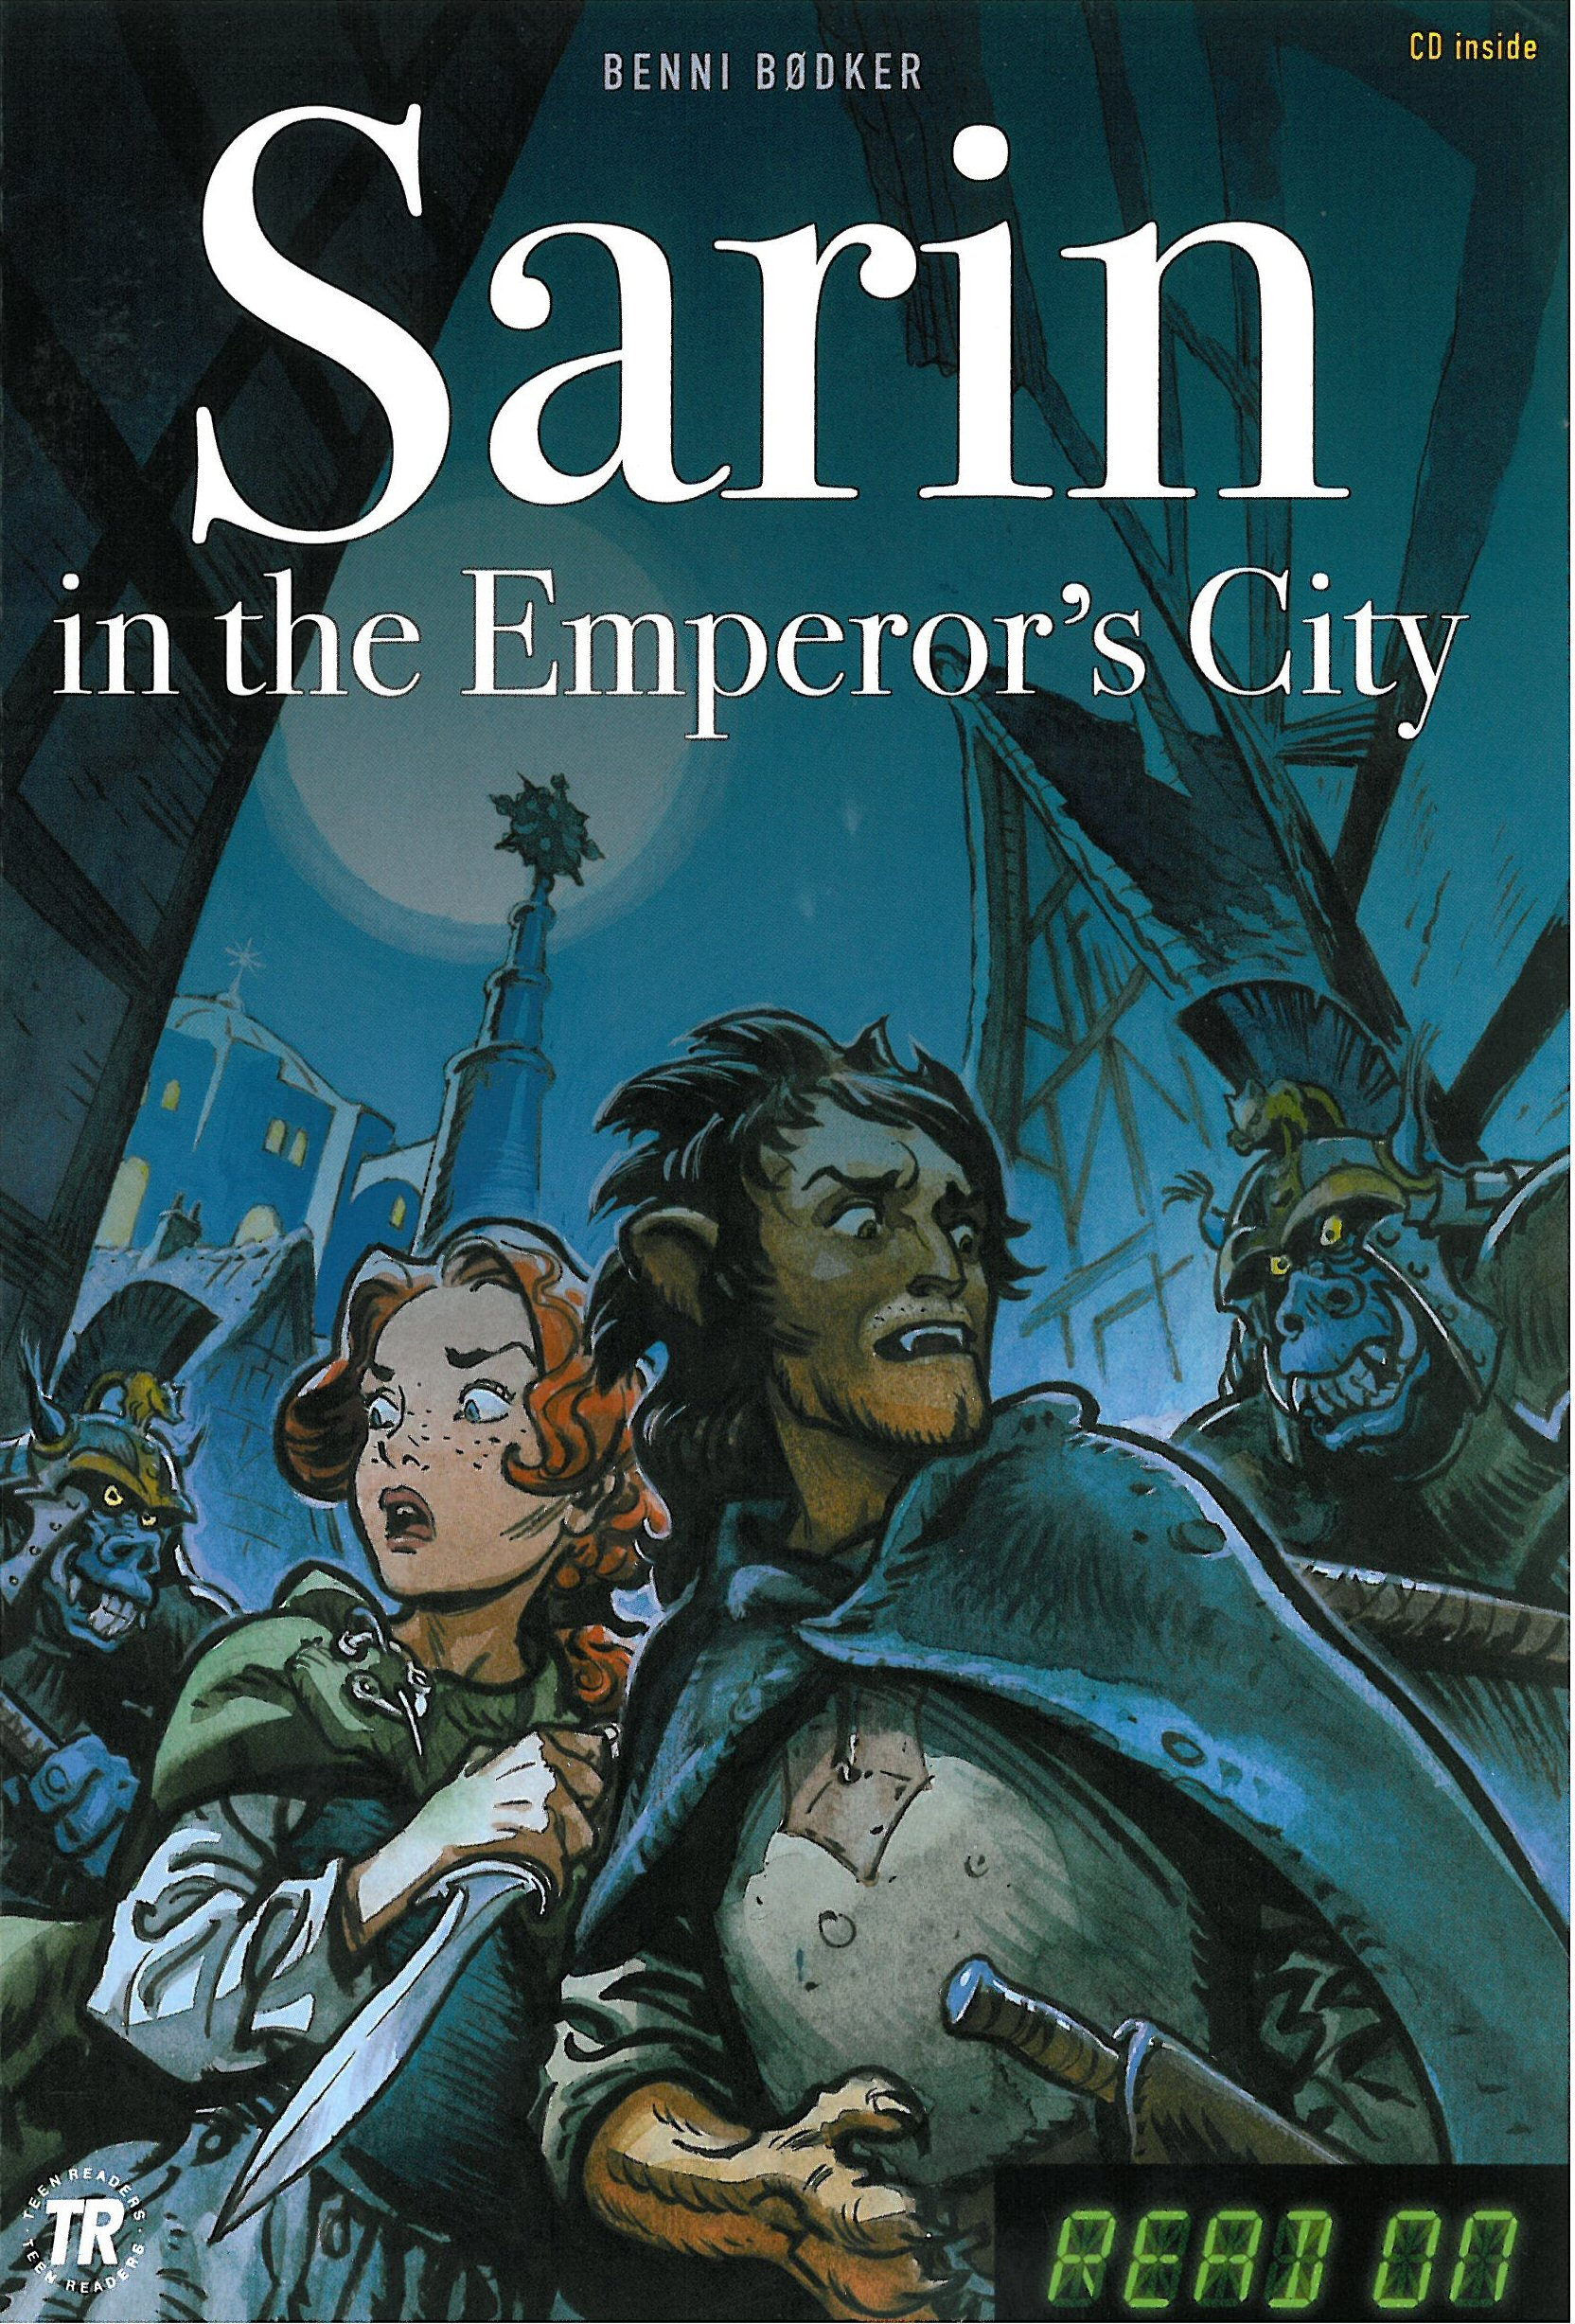 Sarin in the Emperor's City - READ ON series